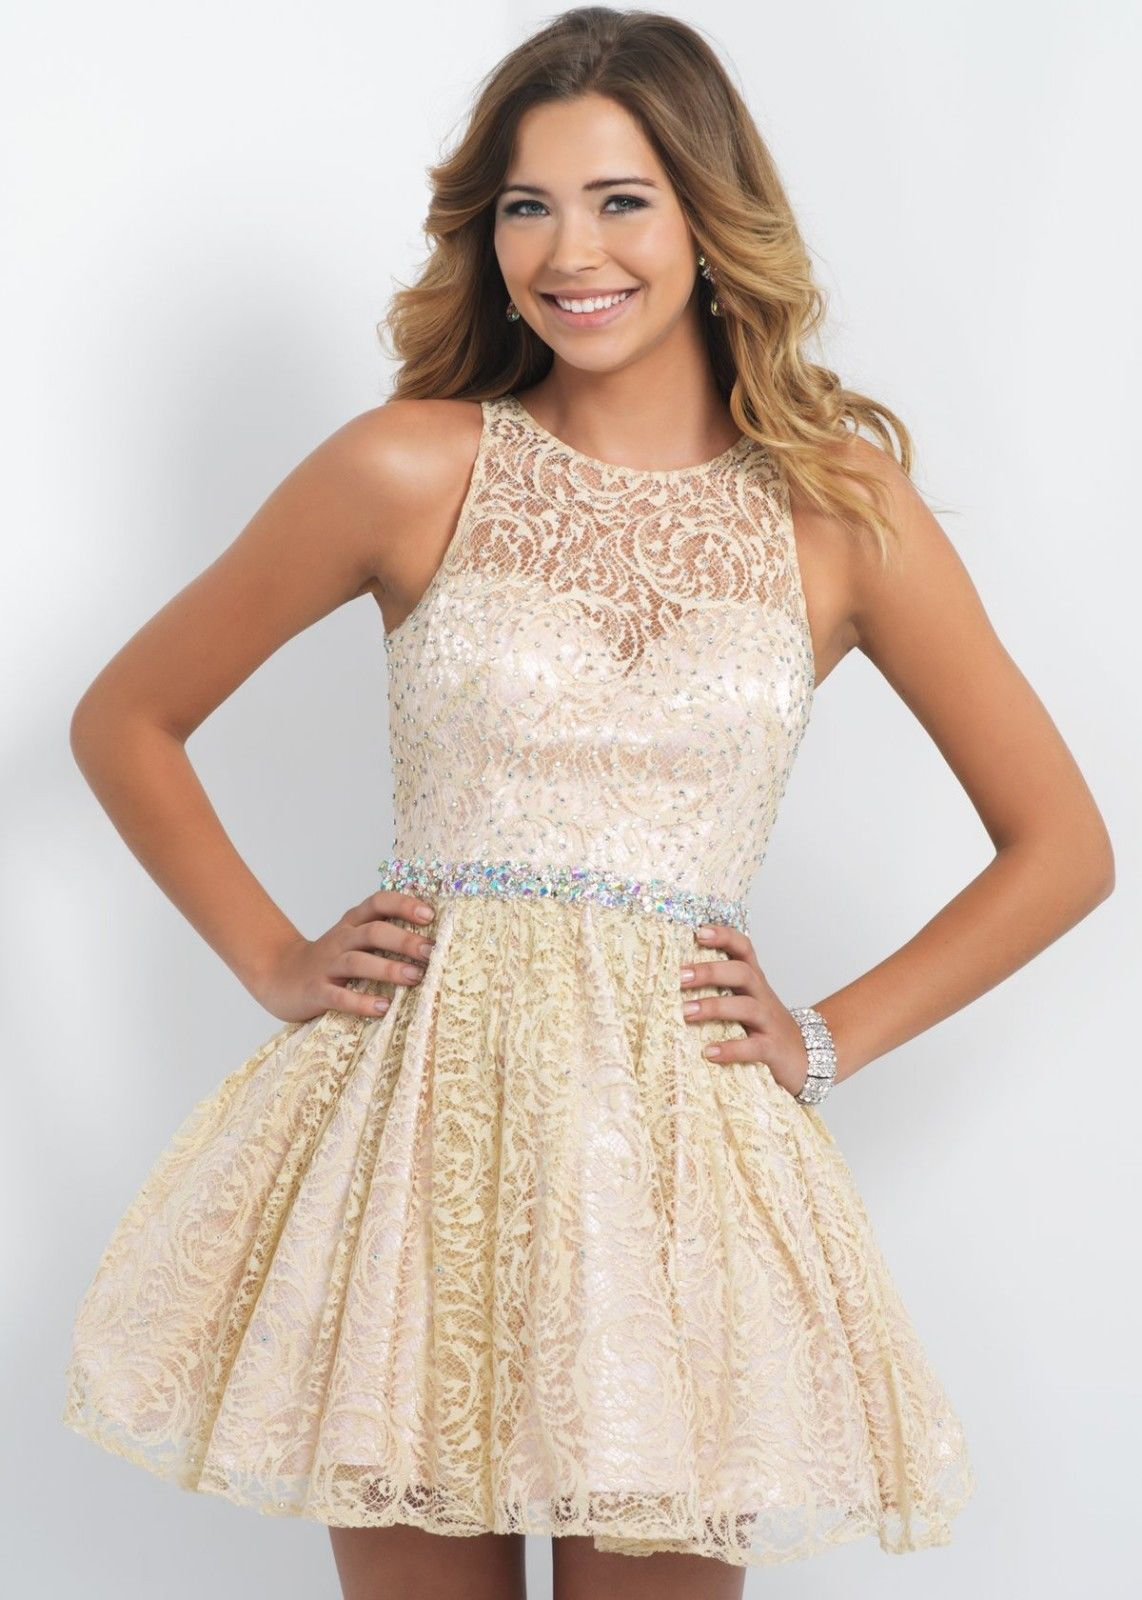 y Champagne Lace Short Prom Dress Home ing Party